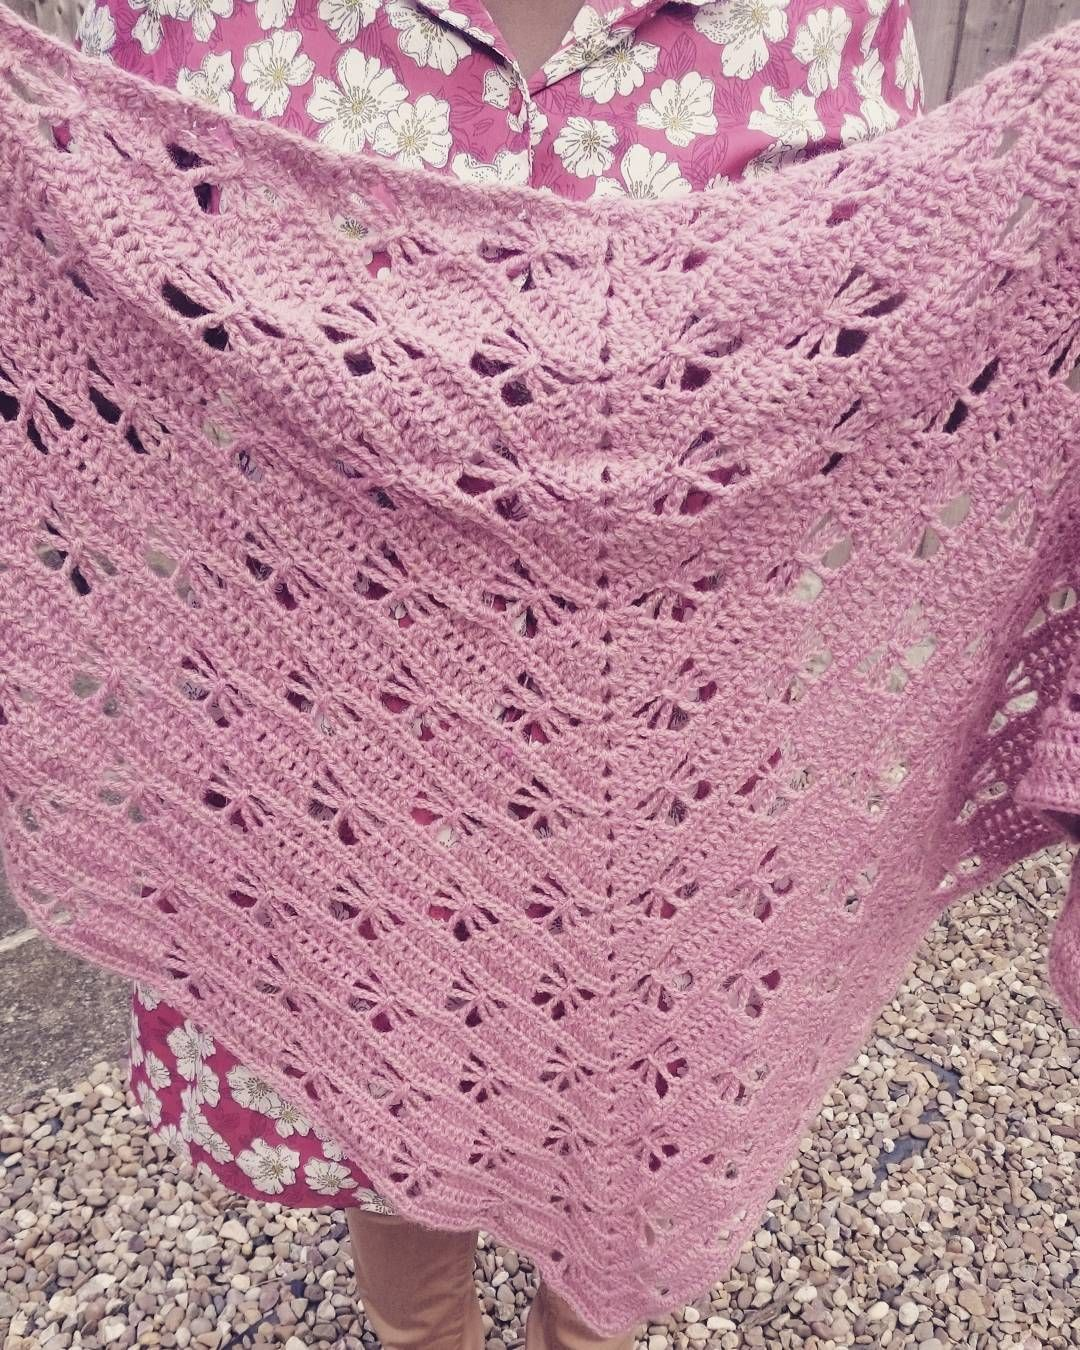 eccentricbrownbear6542:- The shawl is finally ready to wear now I'm pondering whether or not to start crocheting a cardigan or a blanket!? #crochet  #crochetshawl